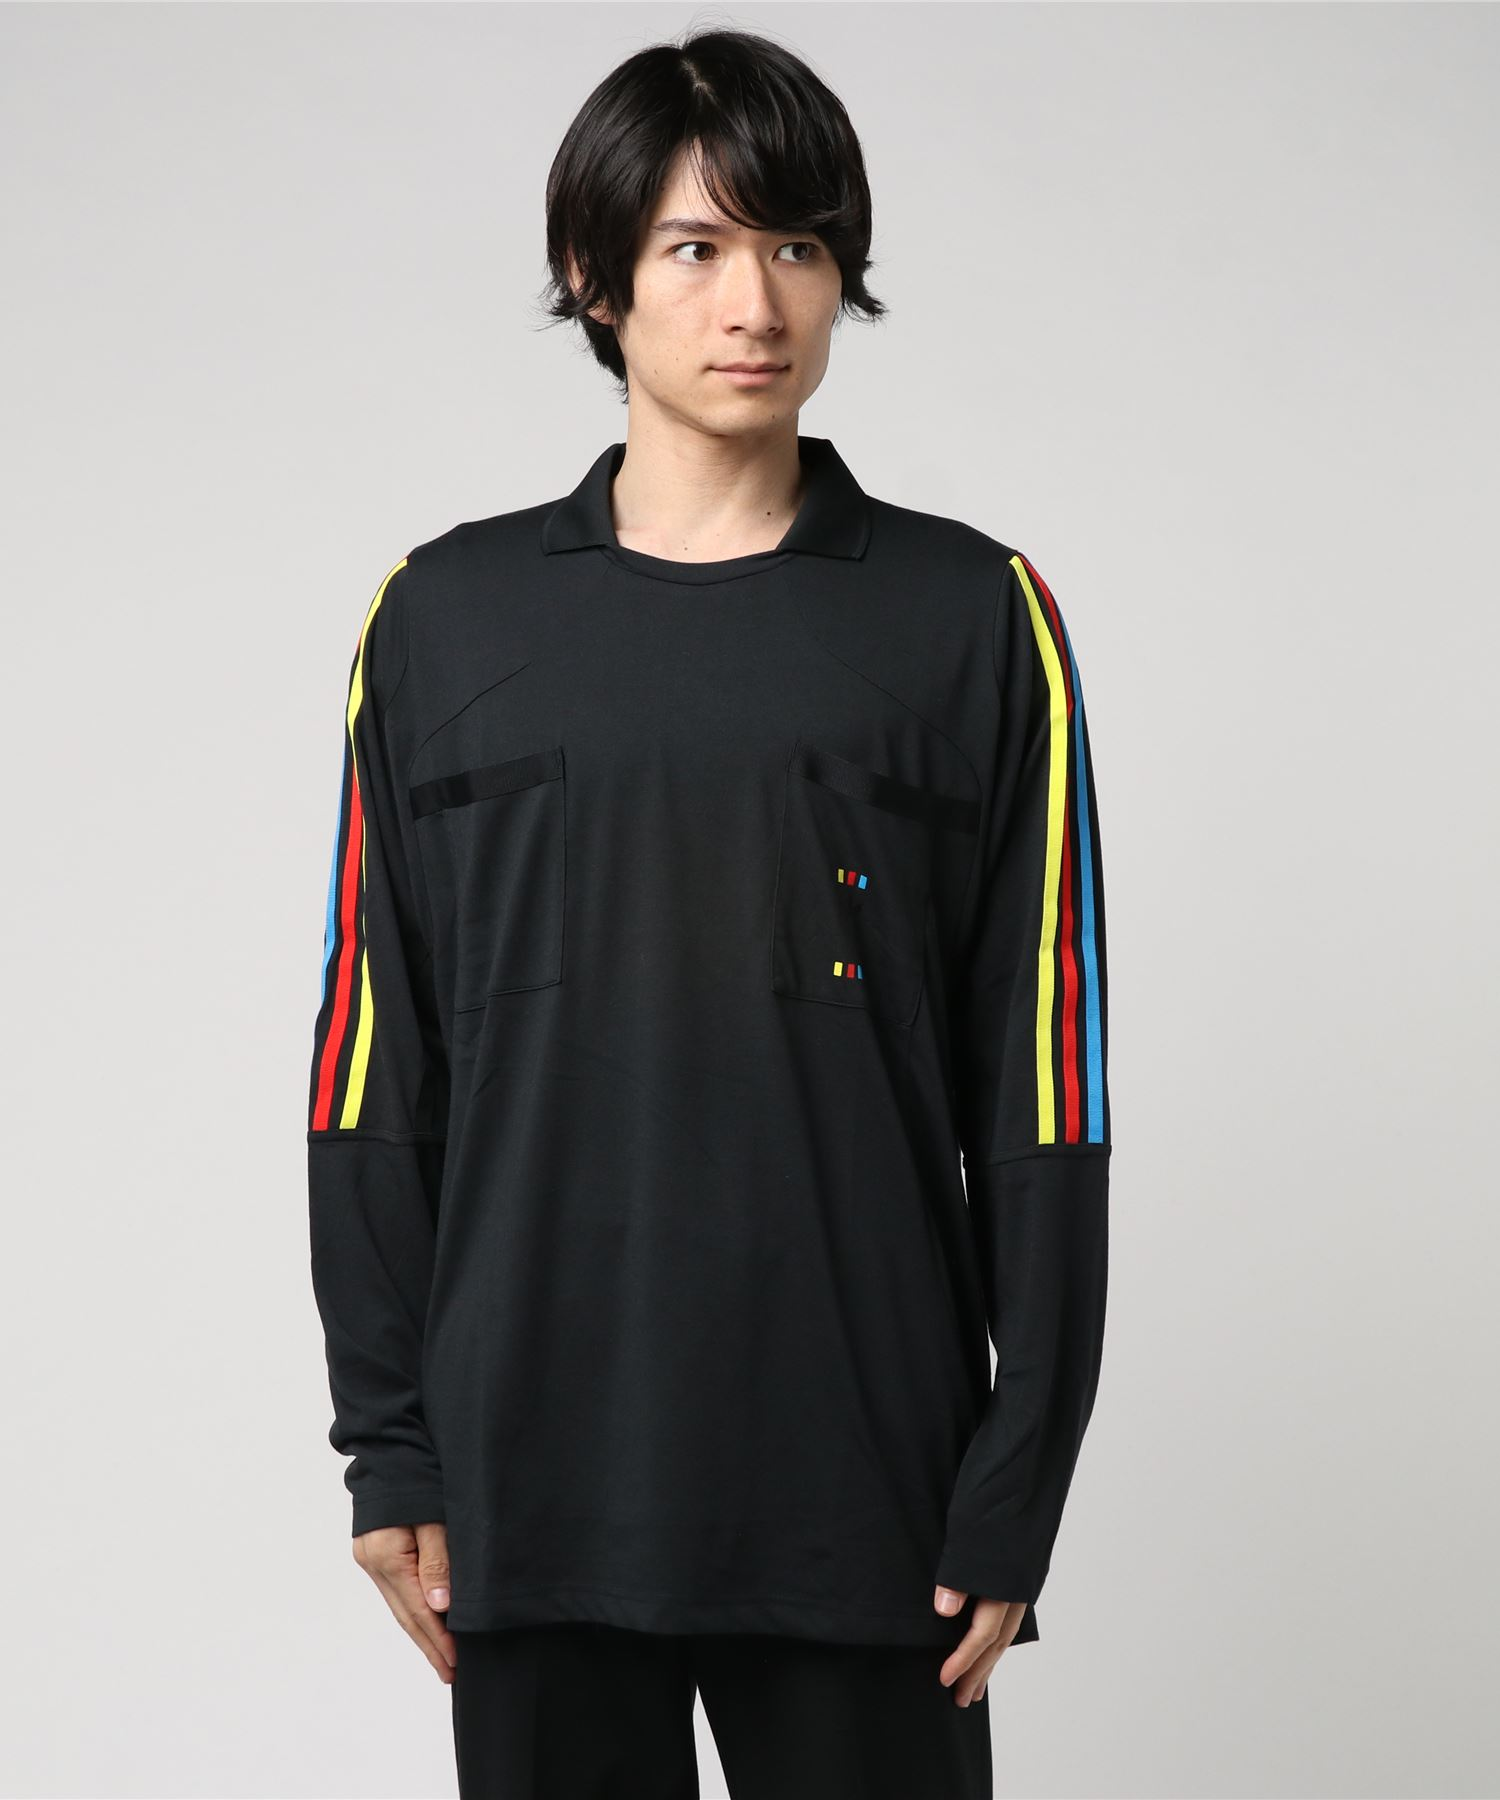 adidas Originals by Oyster Holdings 72HR LS TEE (DU7890)